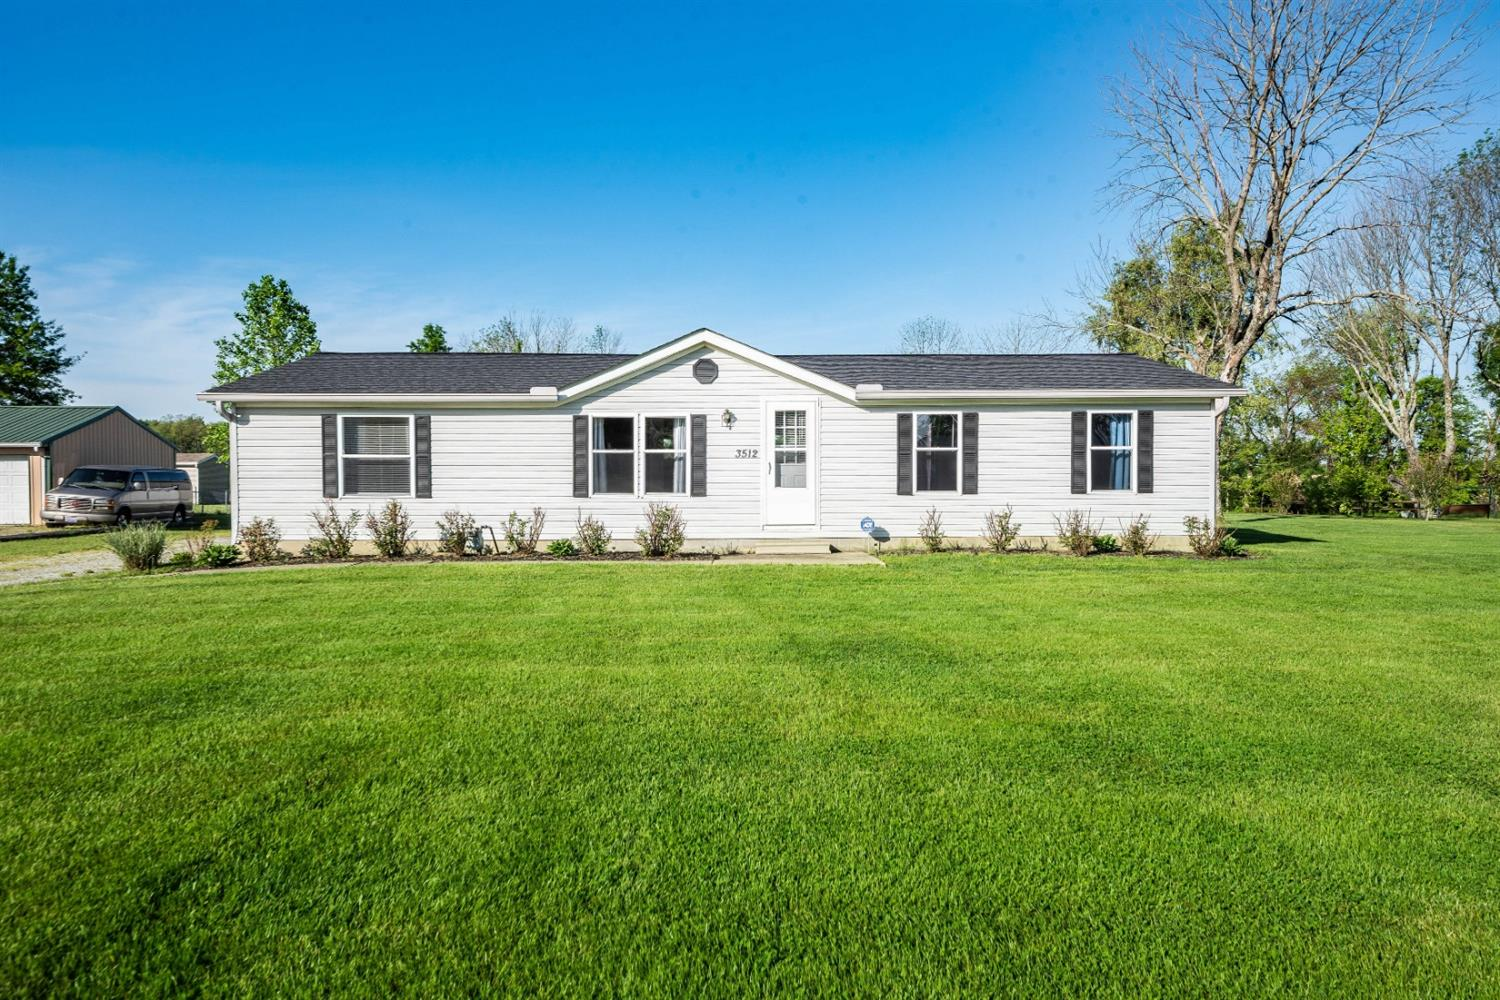 3512 St Rt 125 Lewis Twp., OH